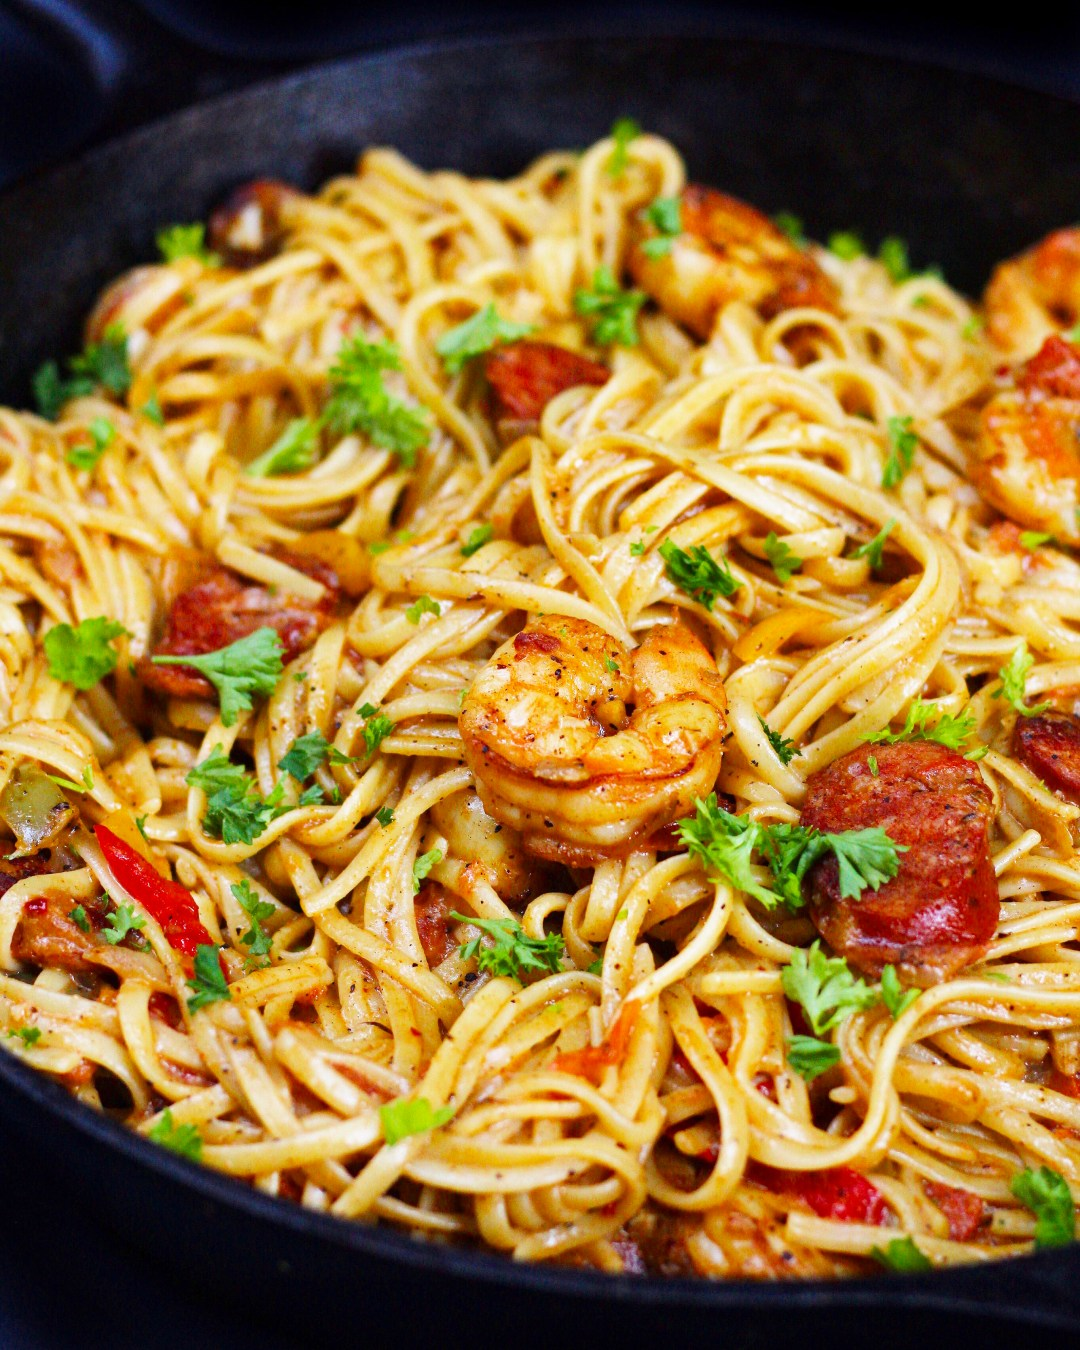 Crazy delicious Cajun flavors in this creamy, decadent Cajun shrimp pasta with sausage and shrimp; perfect for both entertaining and weeknight dinners!